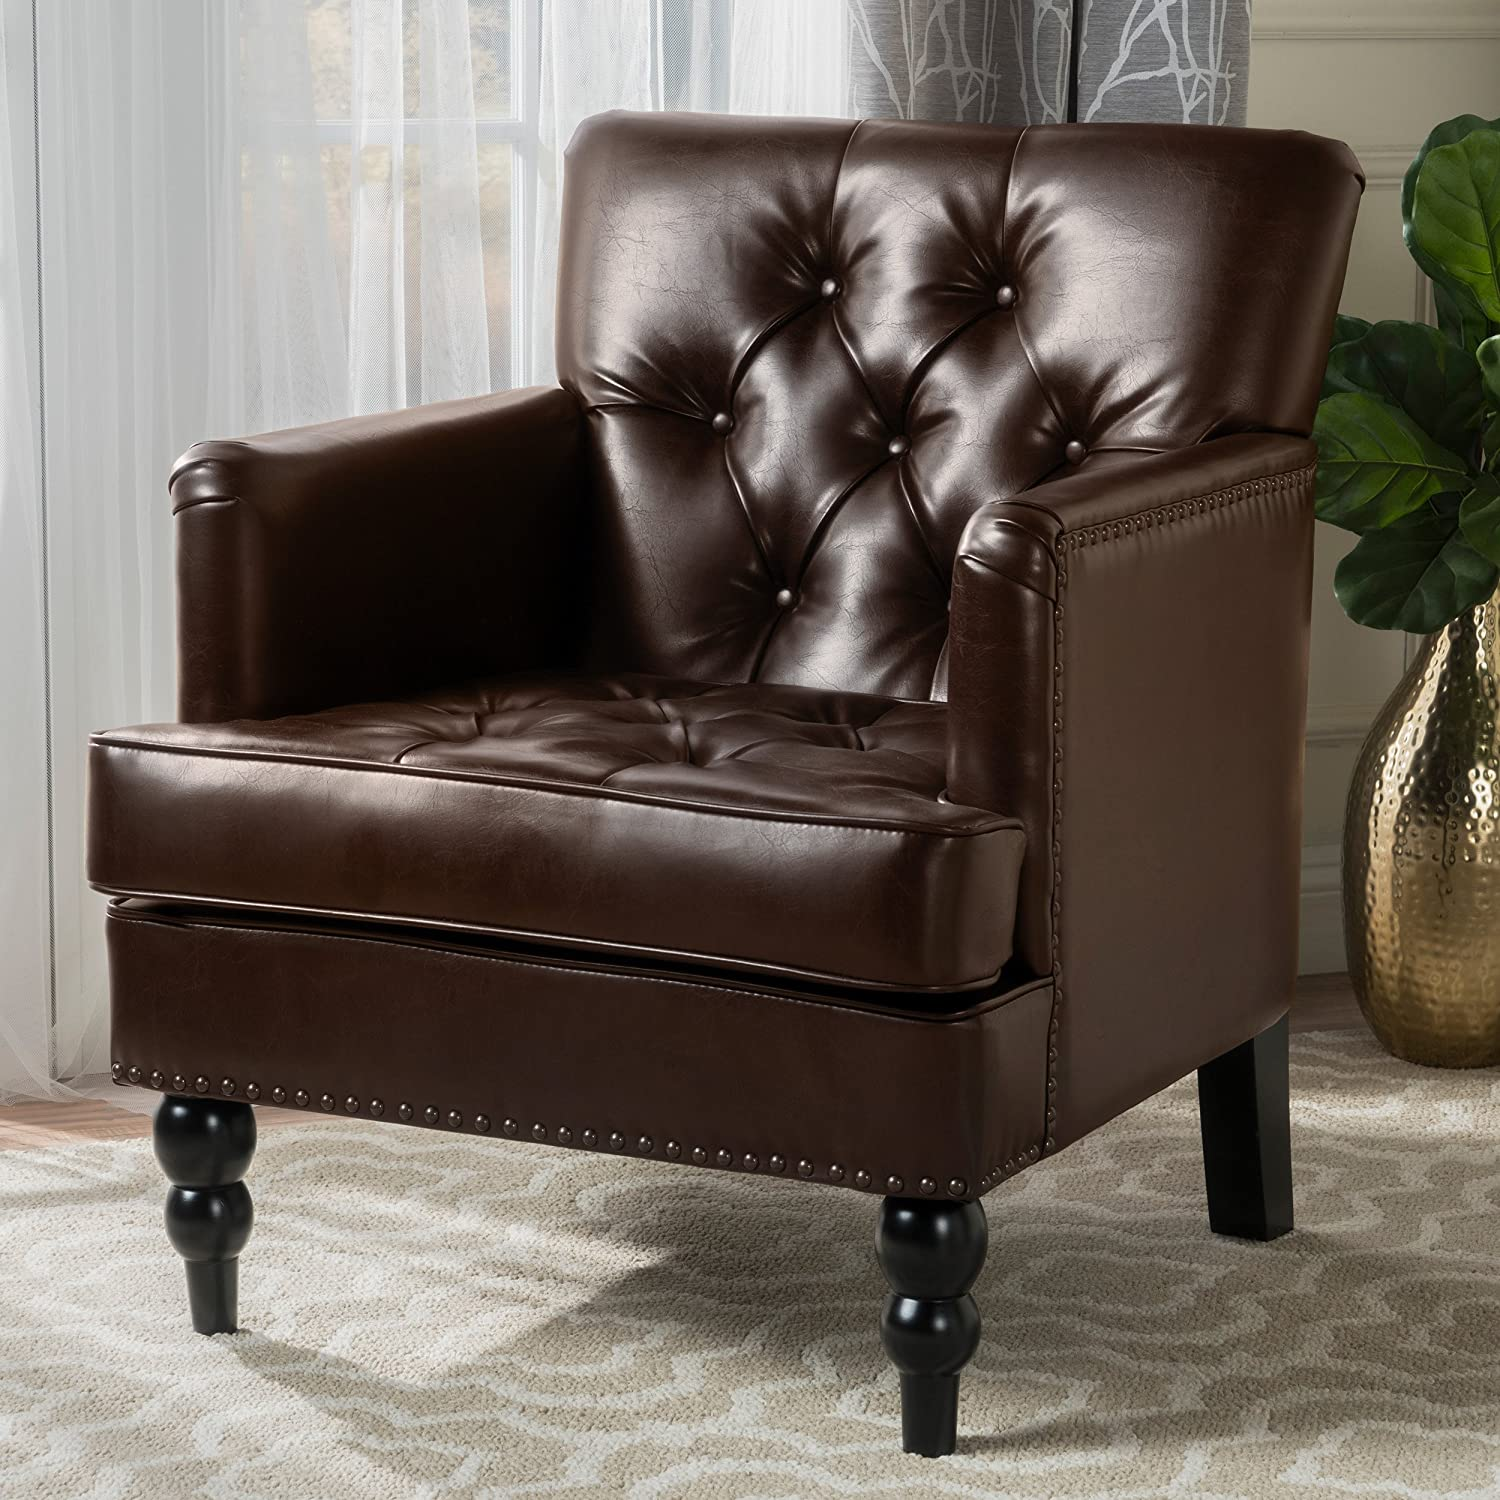 Christopher Knight Home 237354 The Denise Austin Vandor Bonded Features Studs, tufting, and Even Carved Wood Legs That denote only The Finest Elegance. This Medford Brown Leather Club Chair